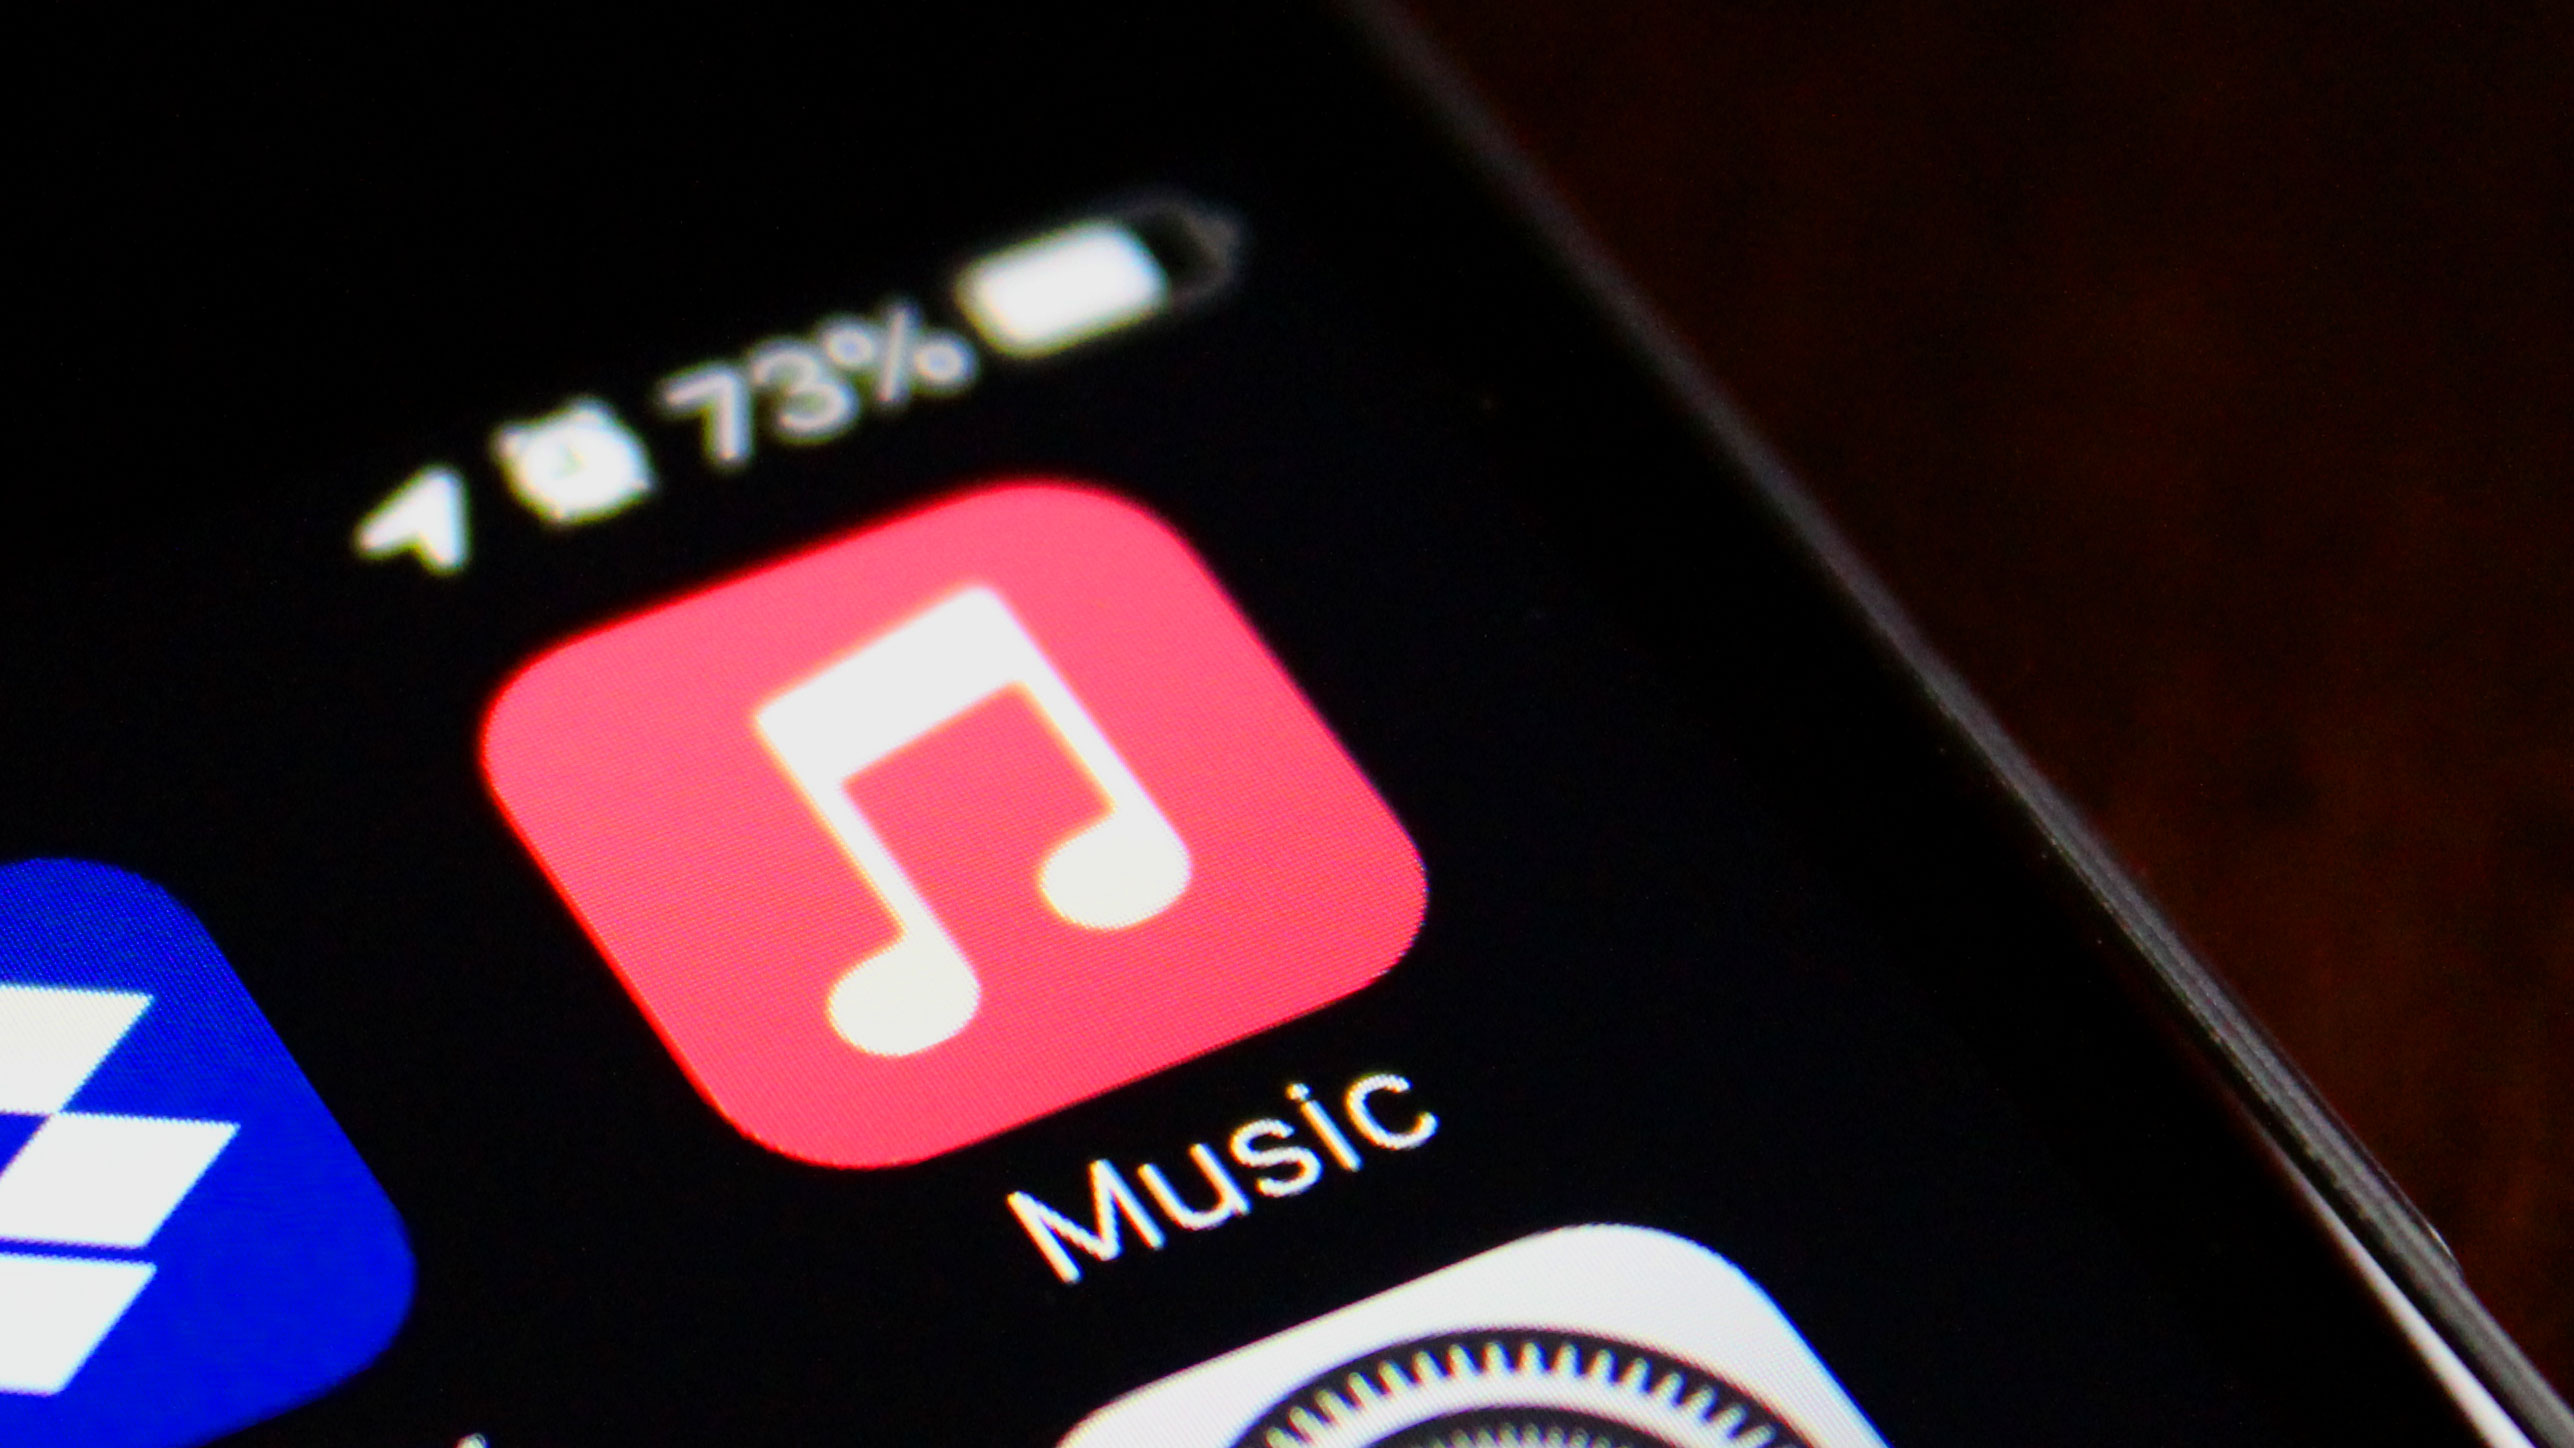 Shazam: Music Discovery on Apple Store for Kyrgyzstan